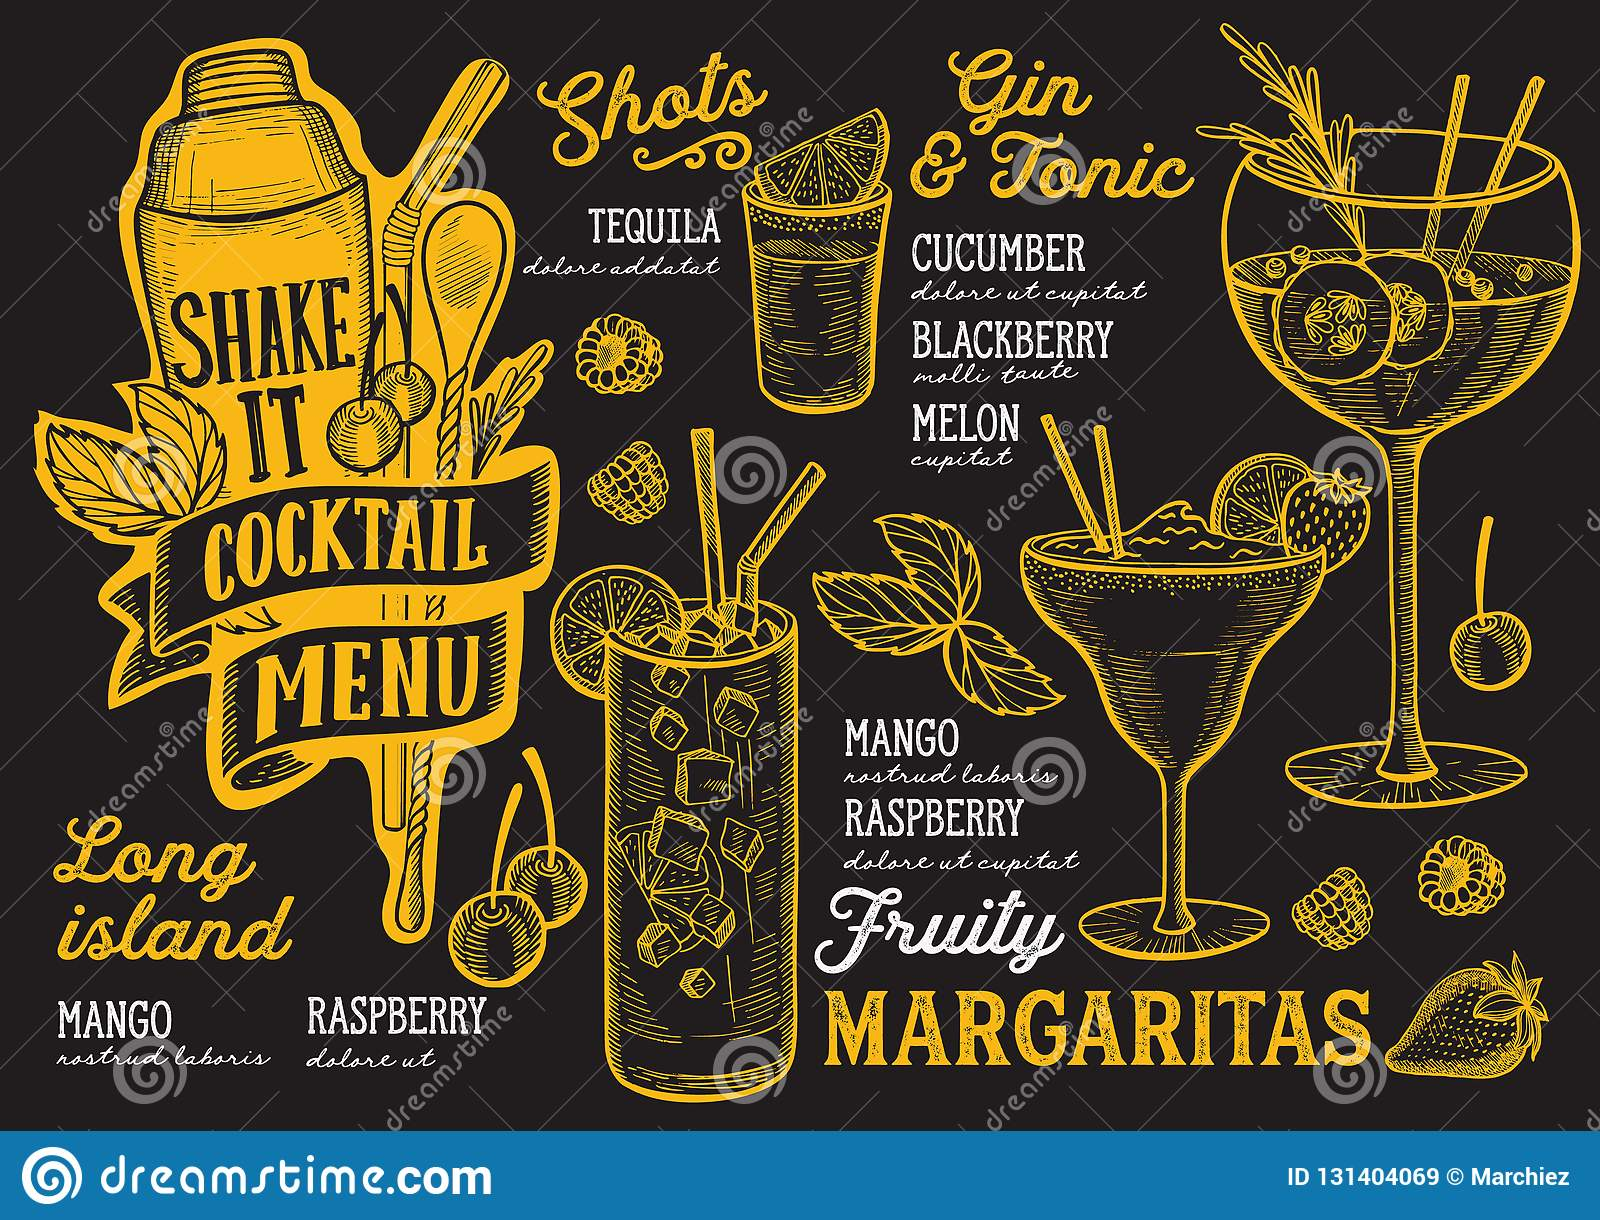 Cocktail Menu Template For Restaurant On A Blackboard Background Vector Illustration Brochure For Food And Drink Bar Design Stock Vector Illustration Of Mary Blackboard 131404069